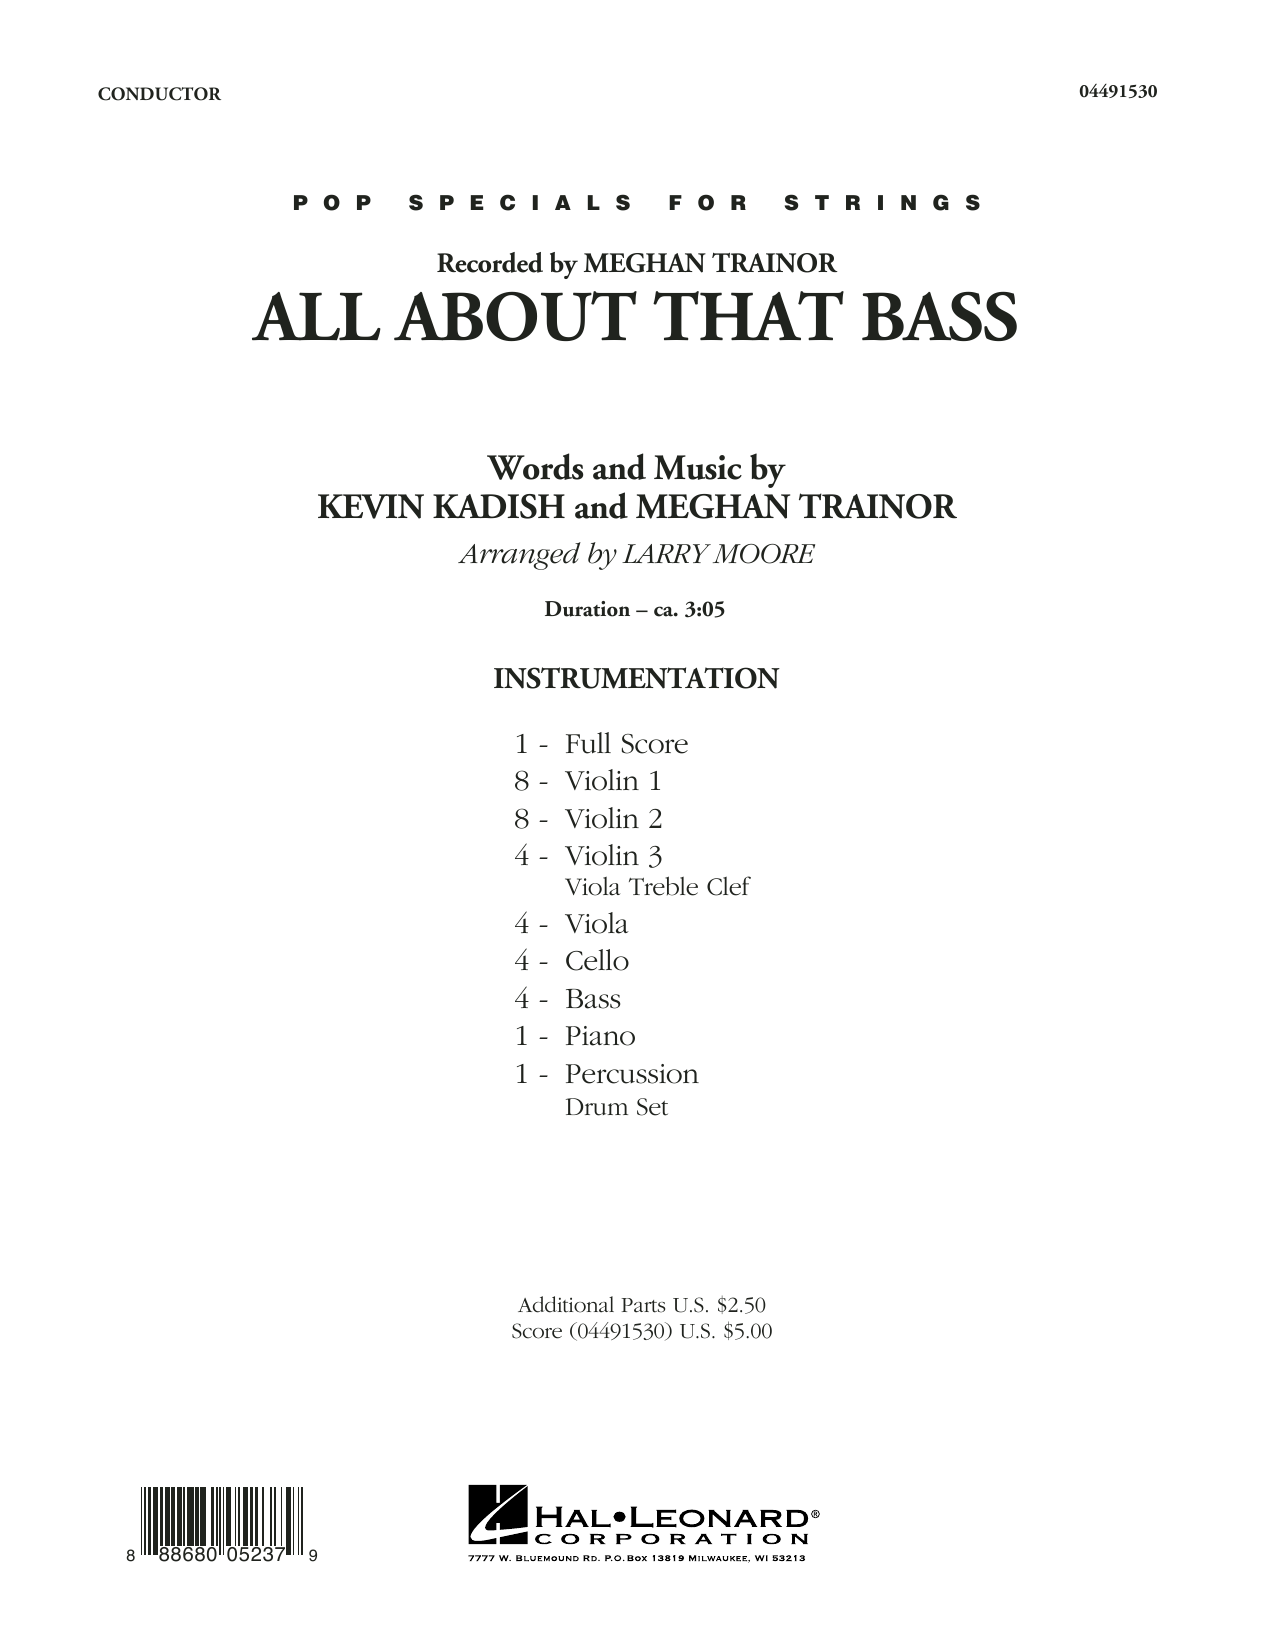 All About That Bass - Conductor Score (Full Score) sheet music